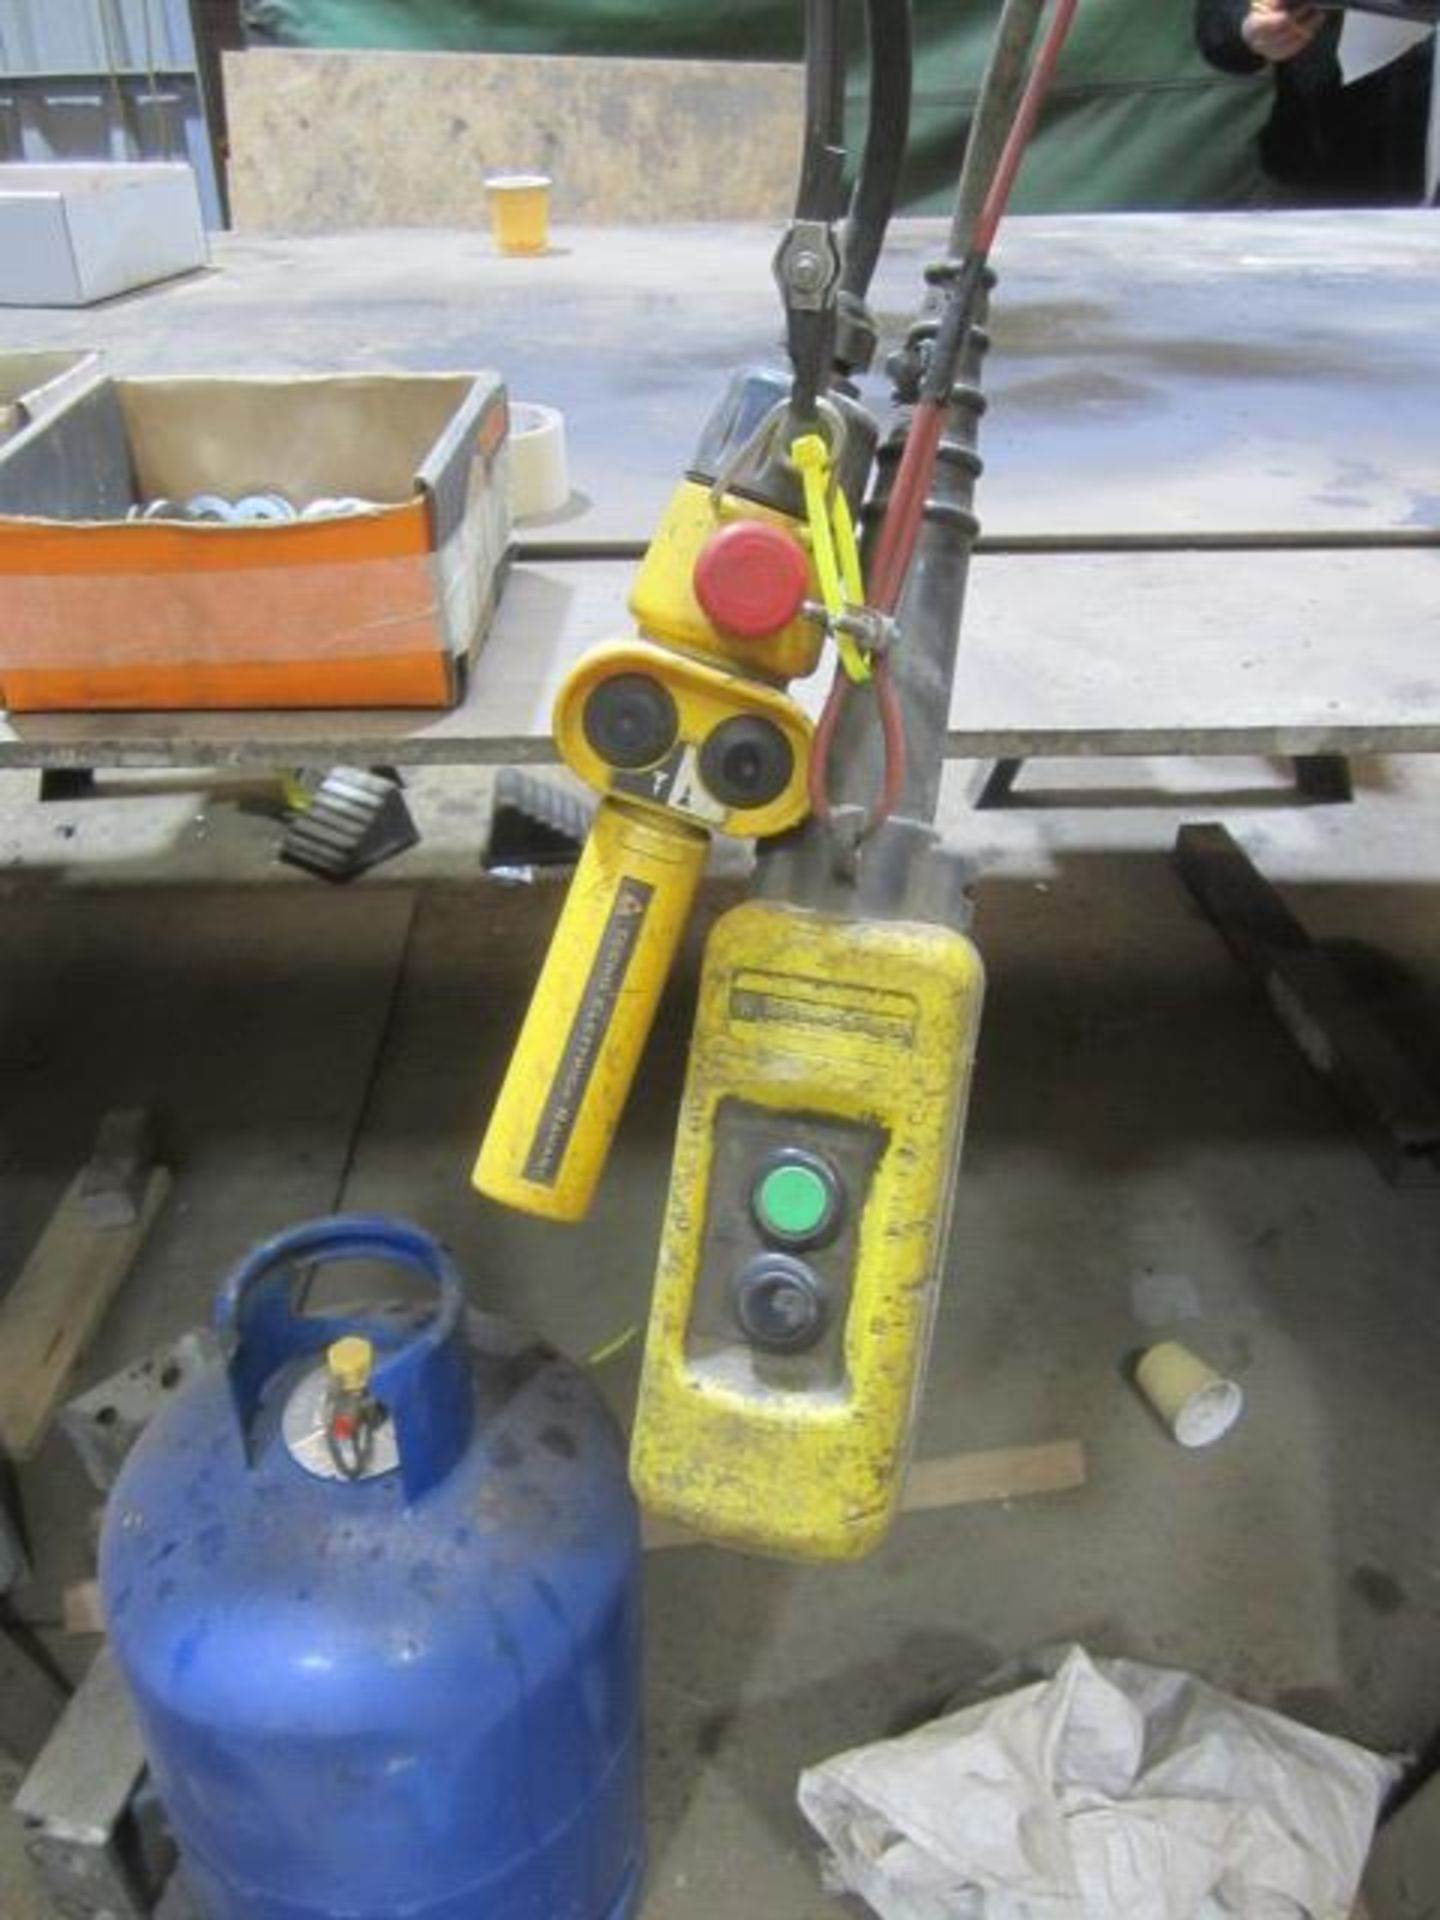 Yale 2000kg electric chain hoist, with power transverse. NB: This item has no record of Thorough - Image 2 of 4